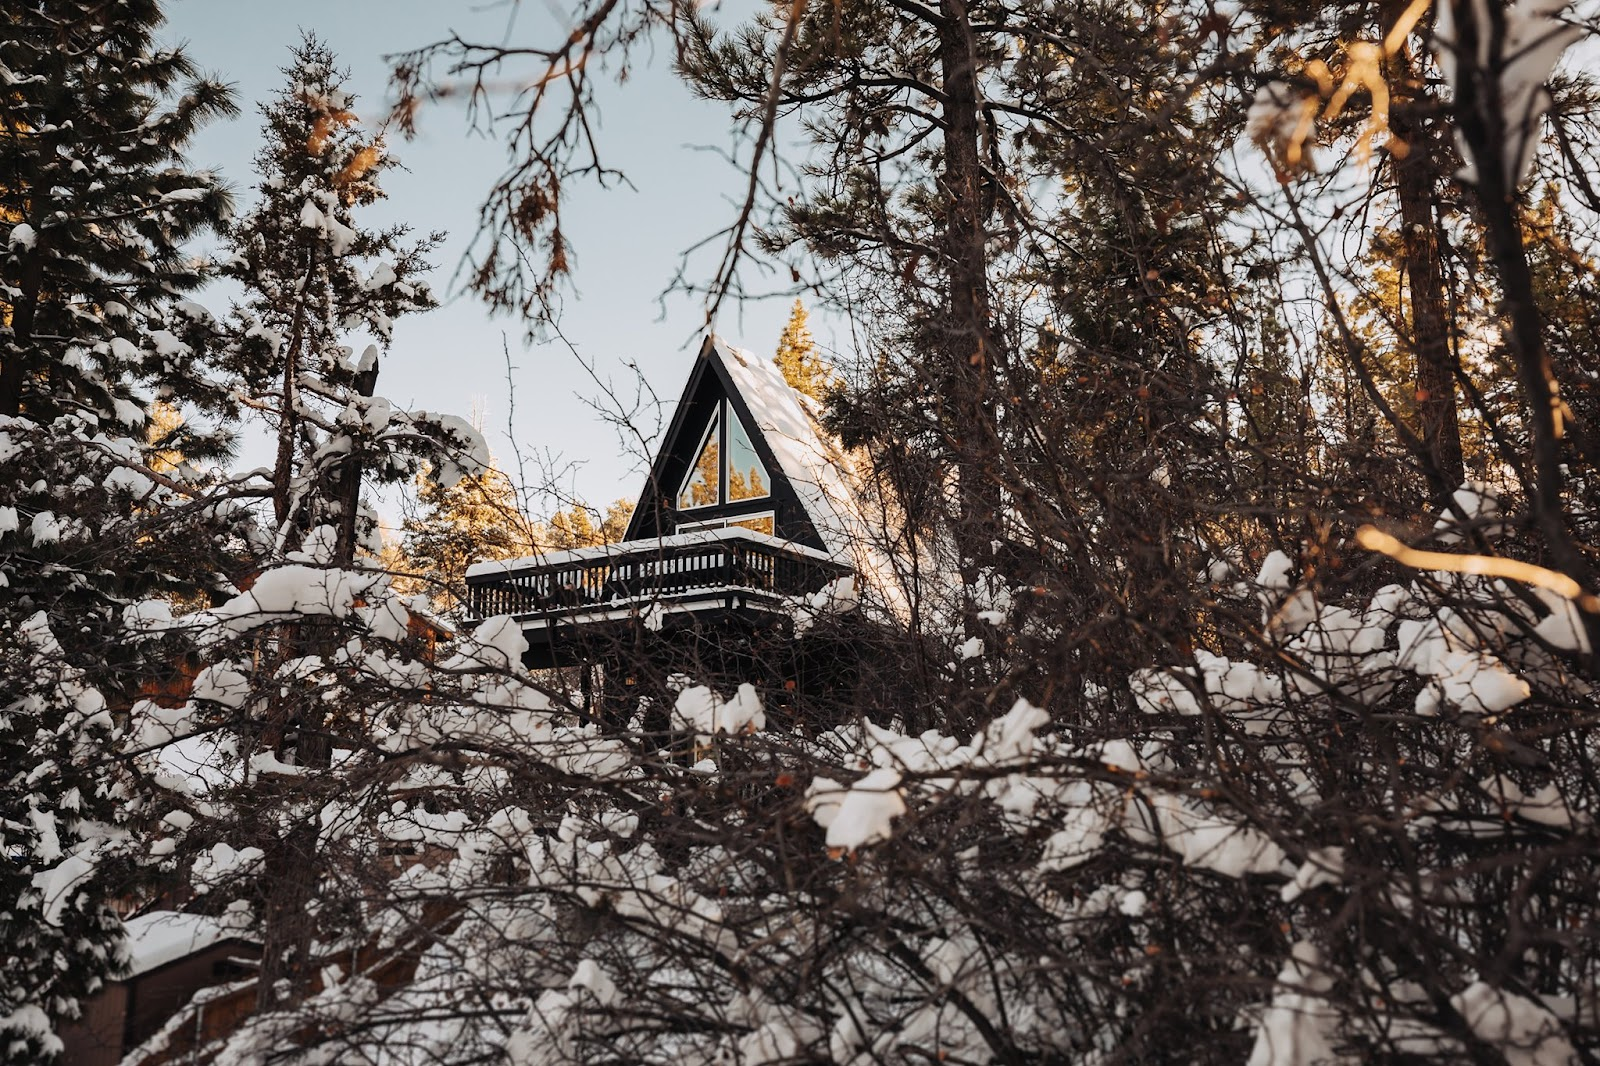 Exterior of Little Black Cabin which is covered in snow and surrounded by tall gum trees